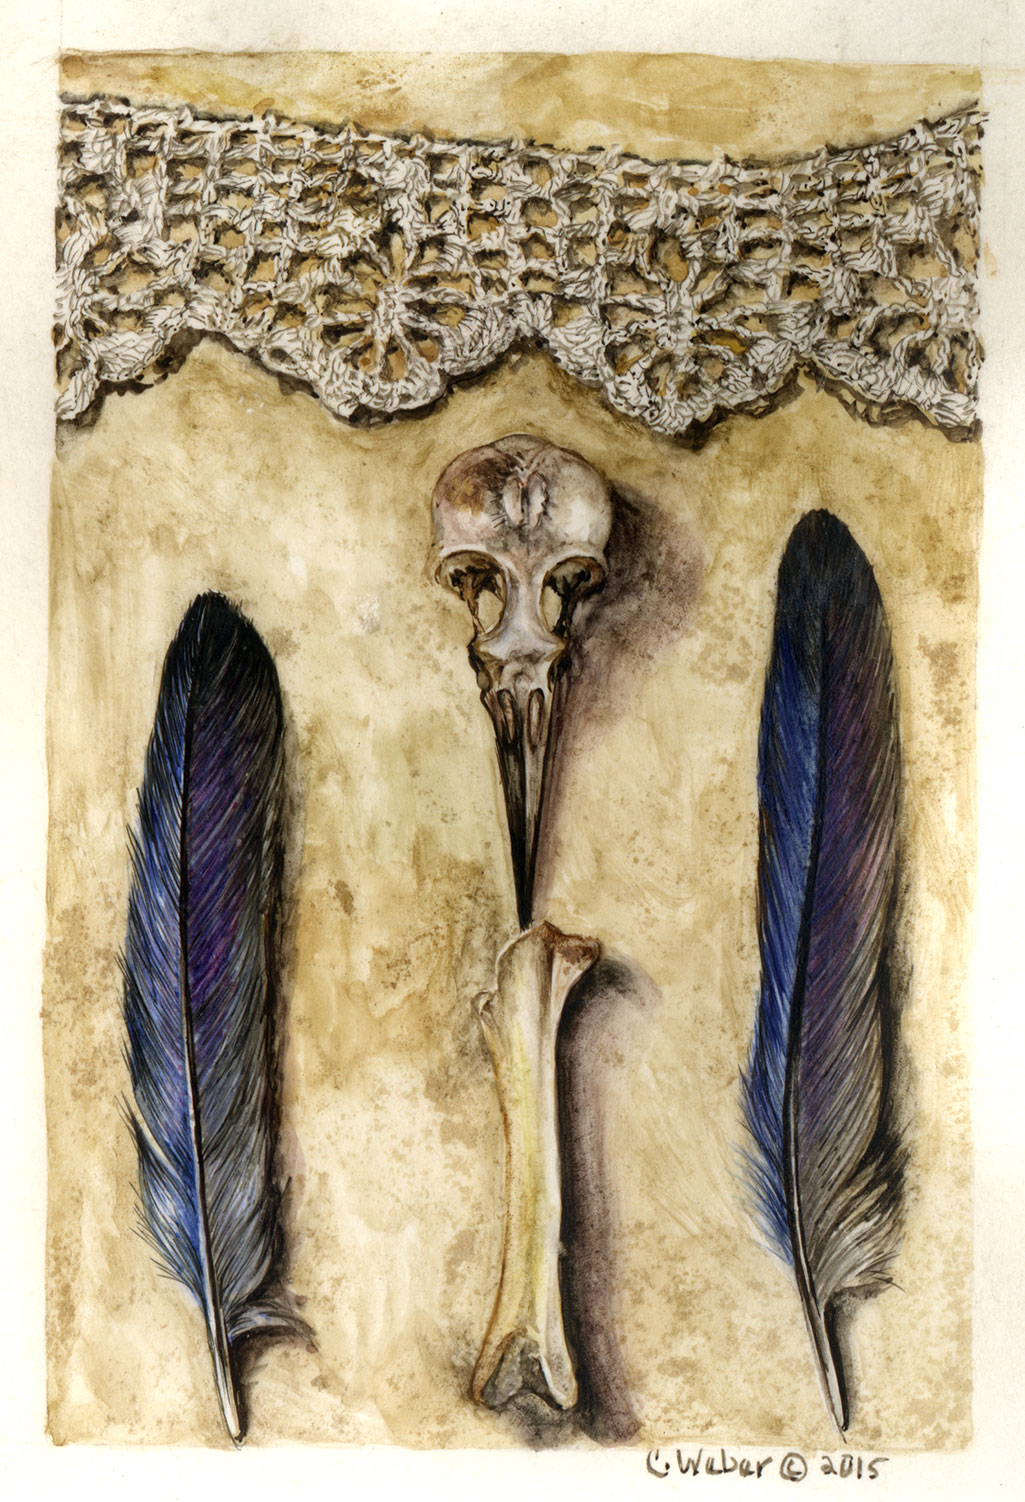 cathy weber - art - lace - scull - woman - montana - parchment - feather - bird